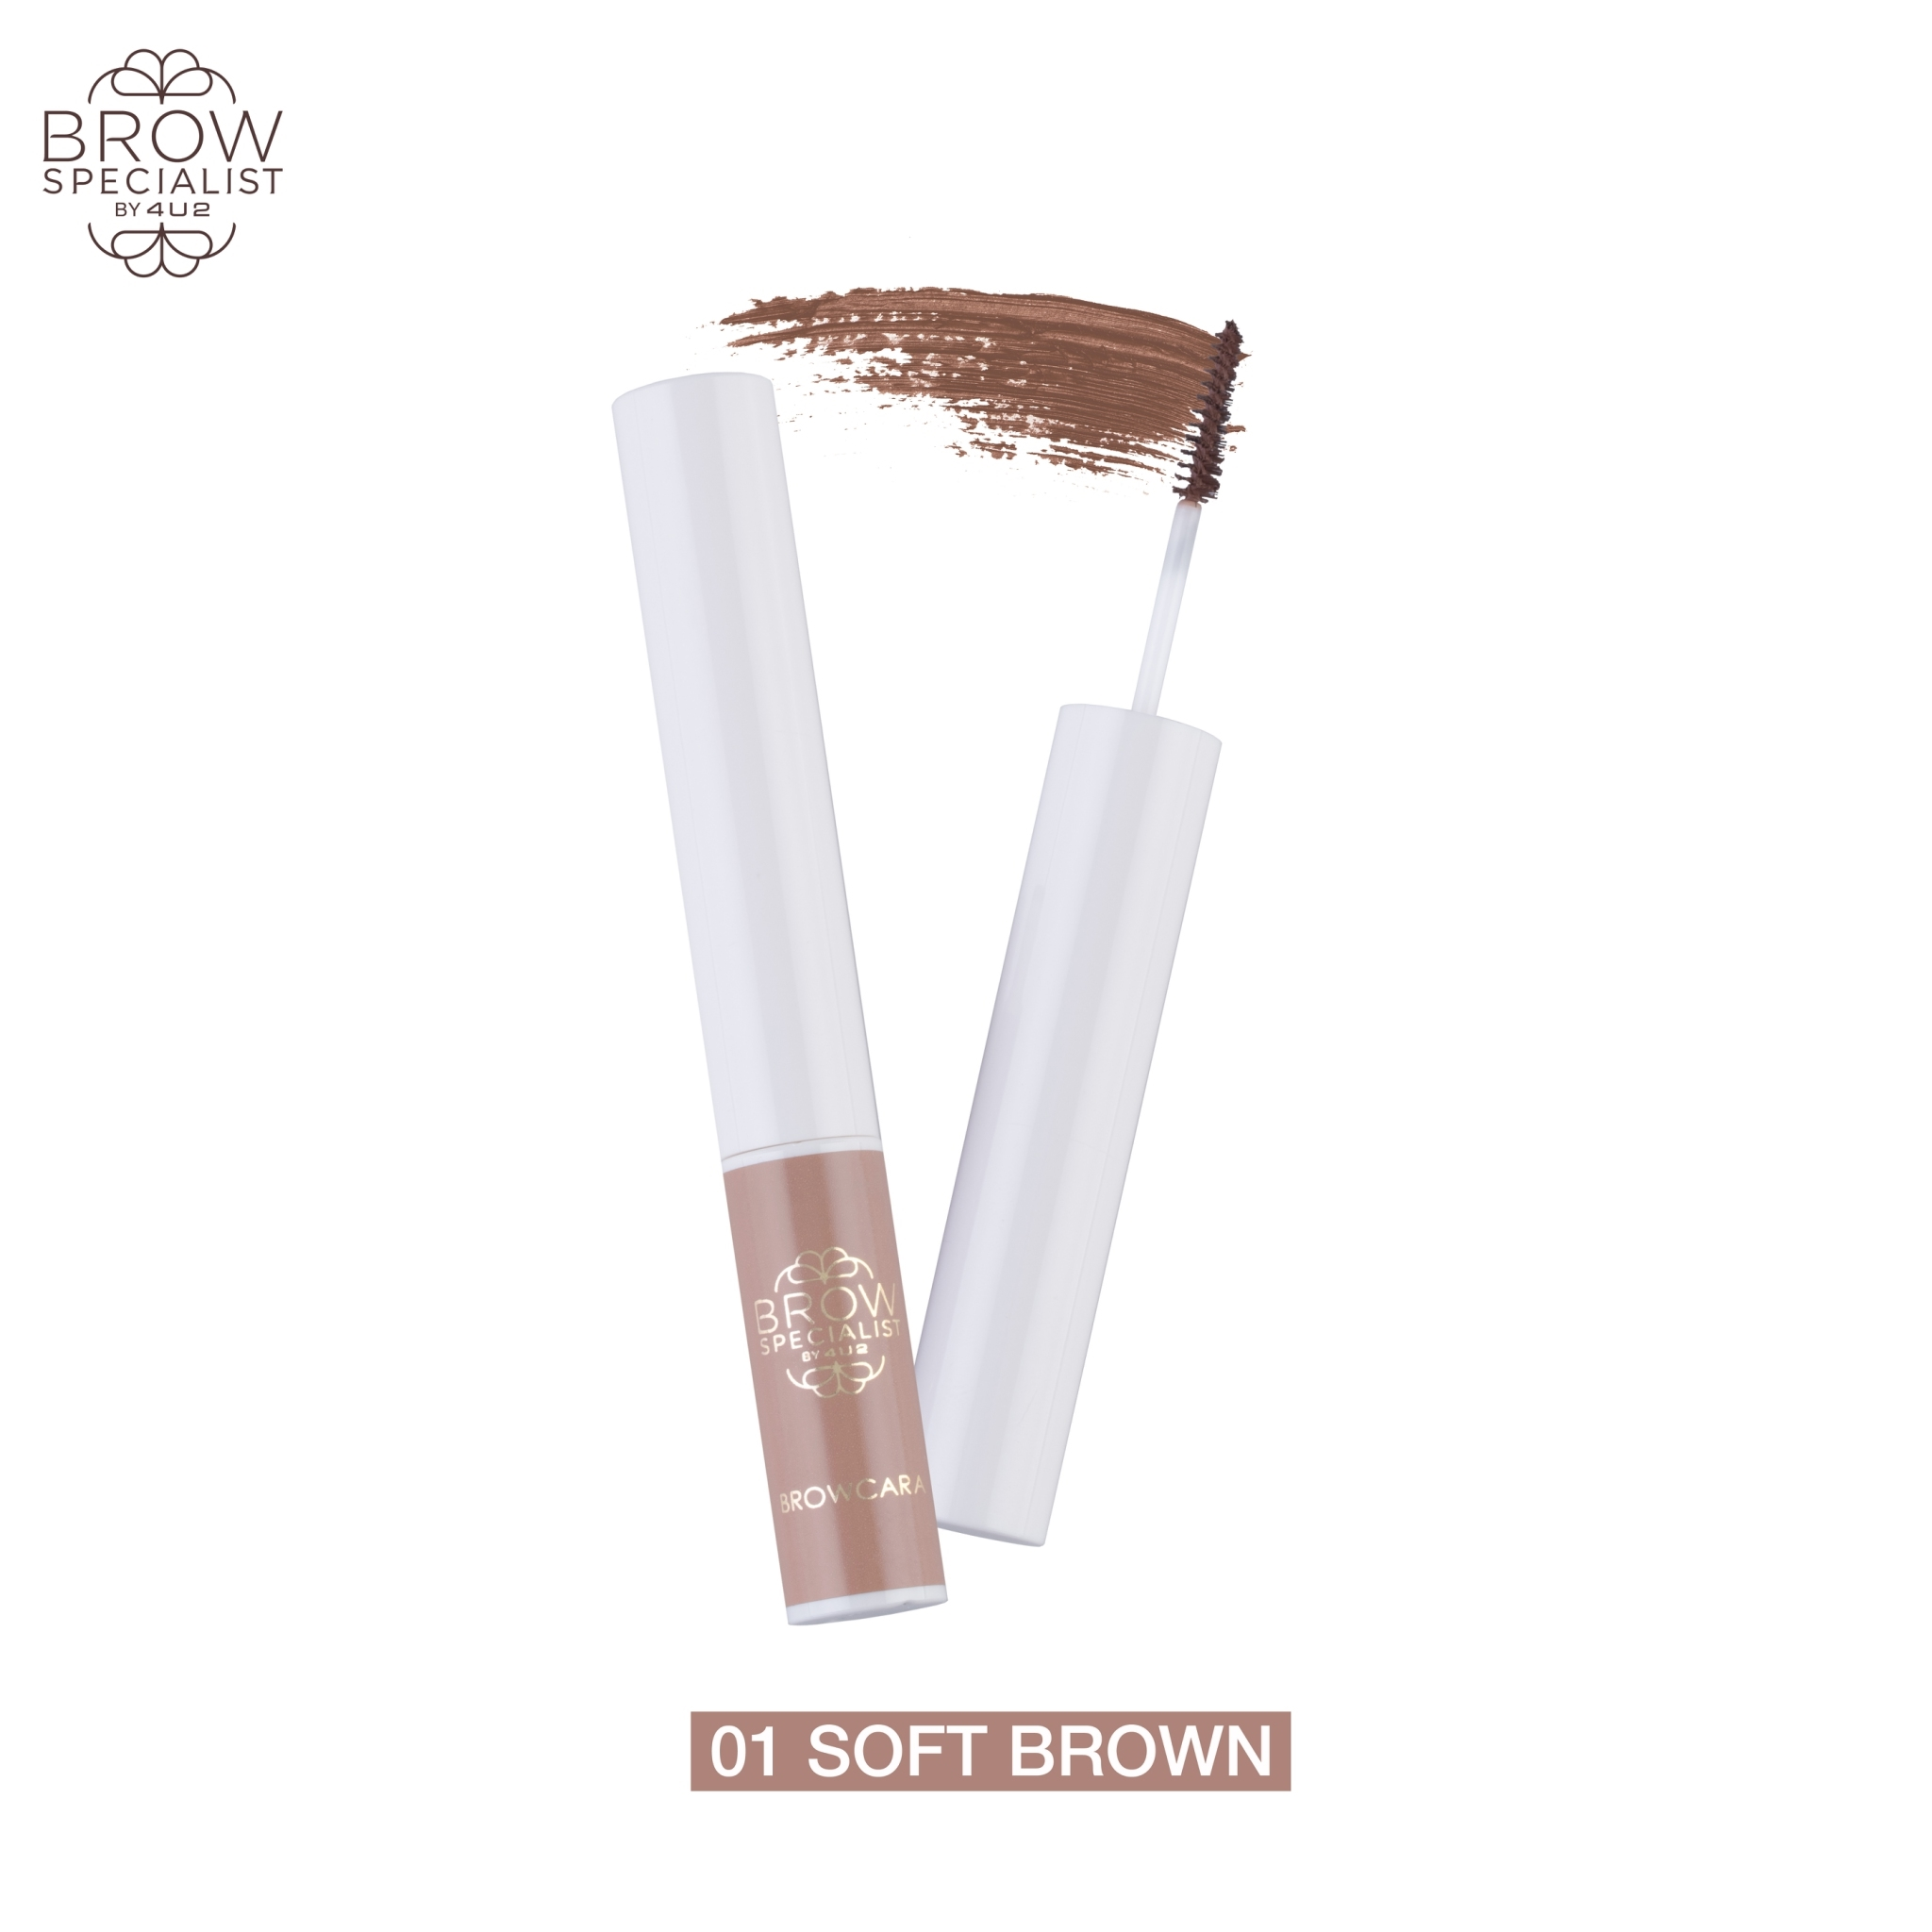 4U2 BROW SPECIALIST BROWCARA #01 SOFT BROWN